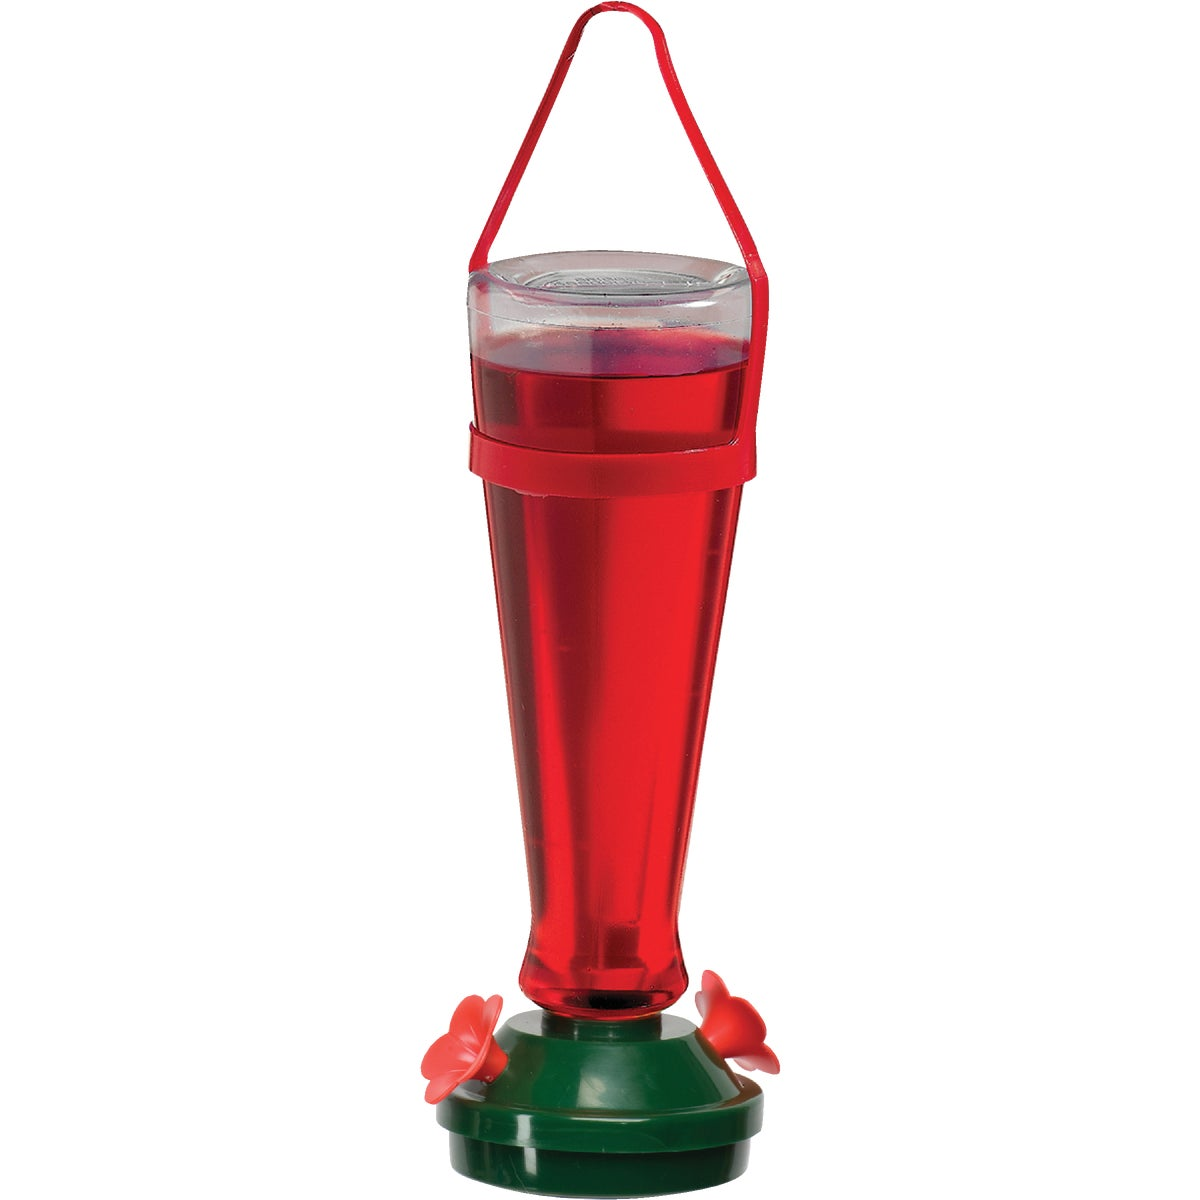 2 BUD HUMMINGBIRD FEEDER - 5545 by Kay Home Products